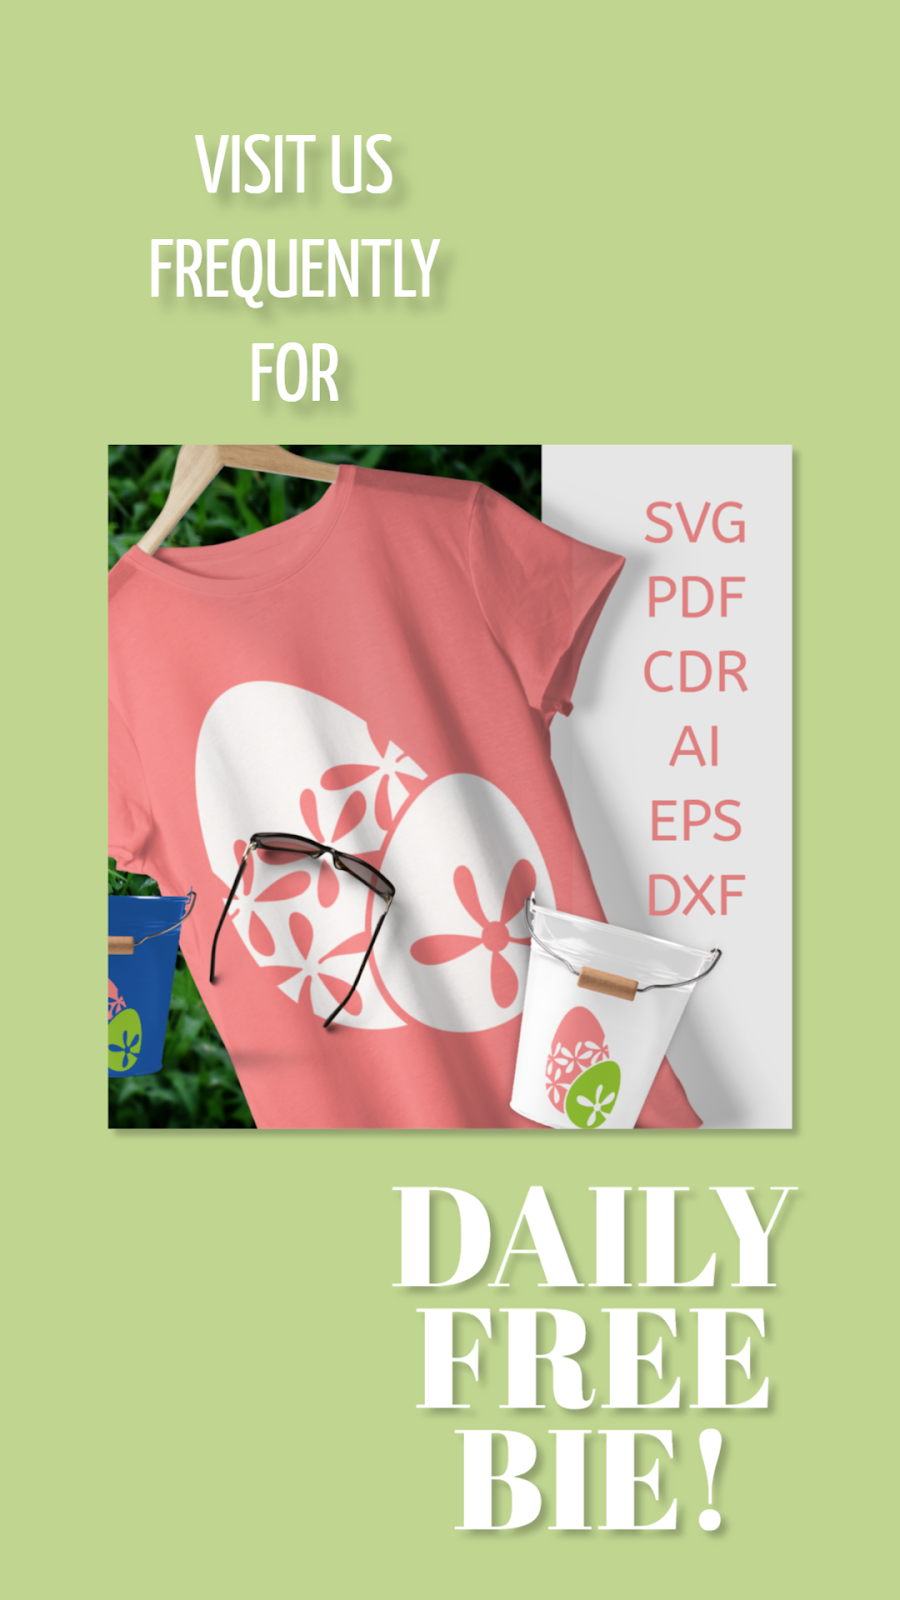 Daily Freebie Day 5 SVG Easter Eggs with flowers